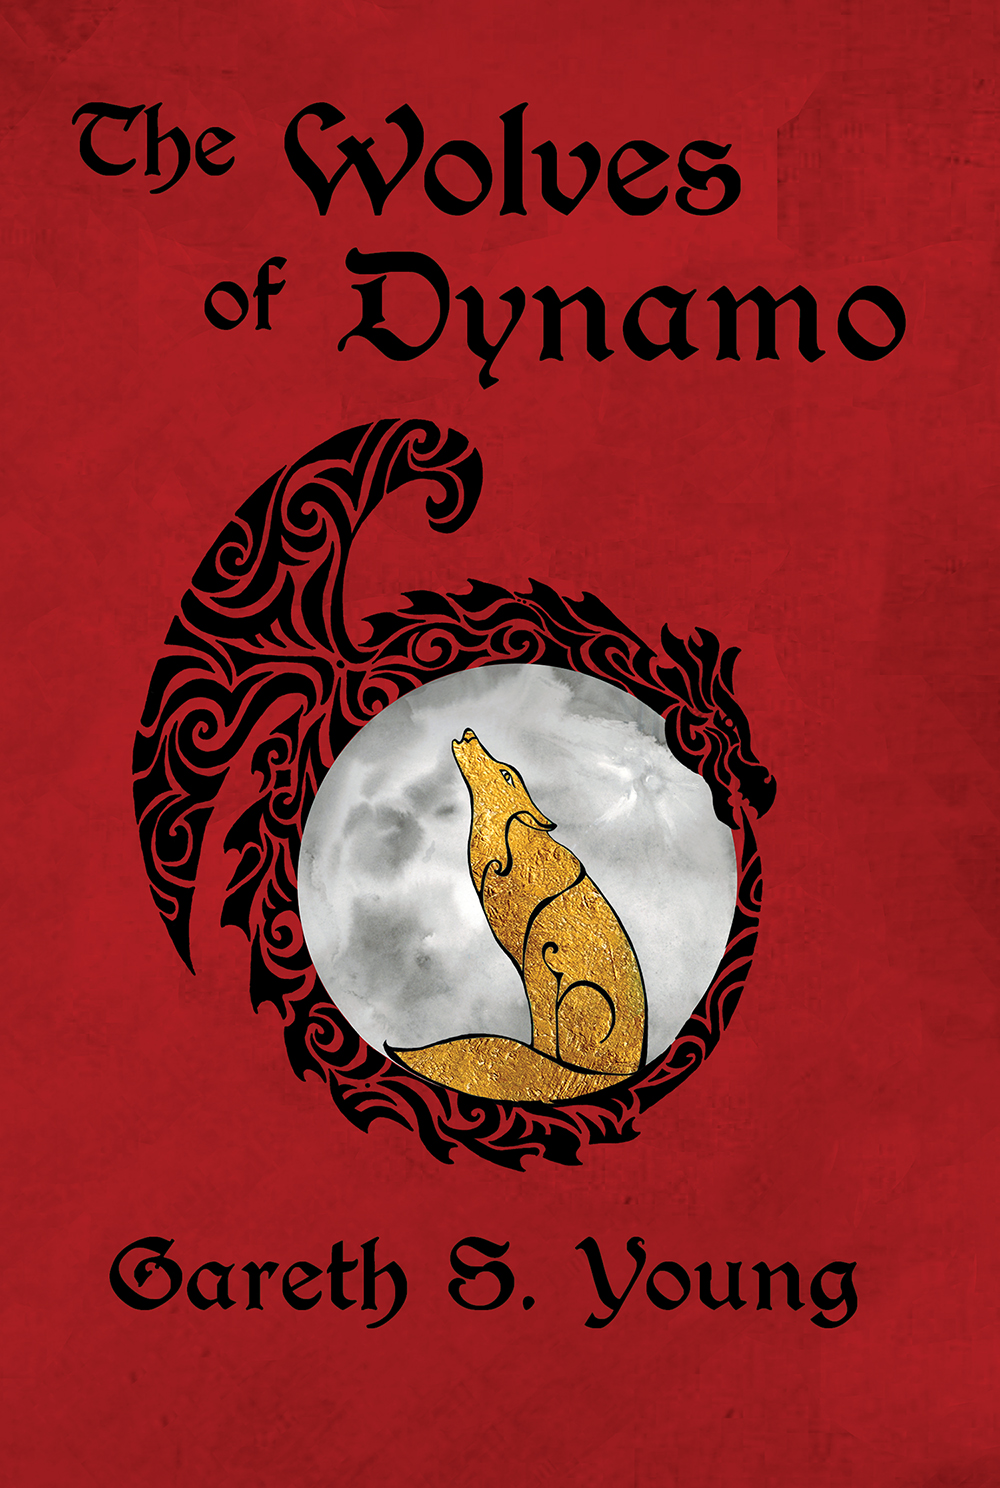 The Wolves of Dynamo